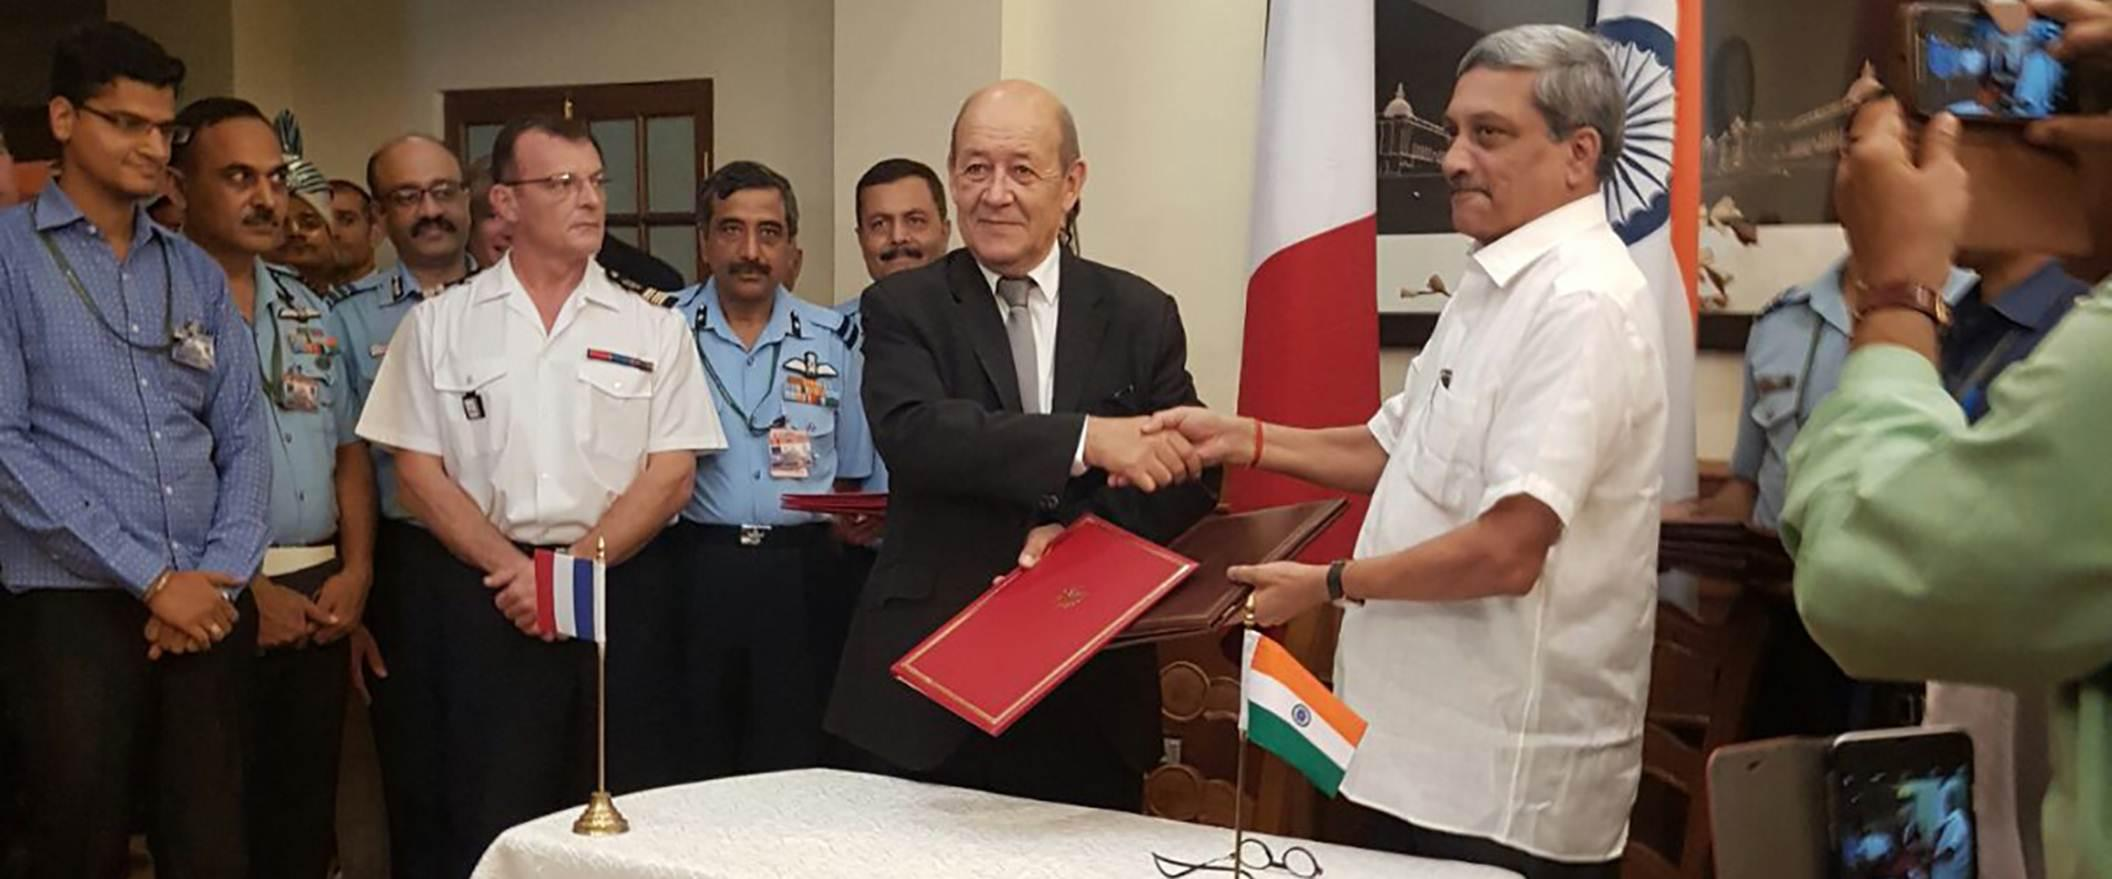 The official signing ceremony for the acquisition of 36 Rafale aircraft was held in New Delhi, India - Thalesgroup